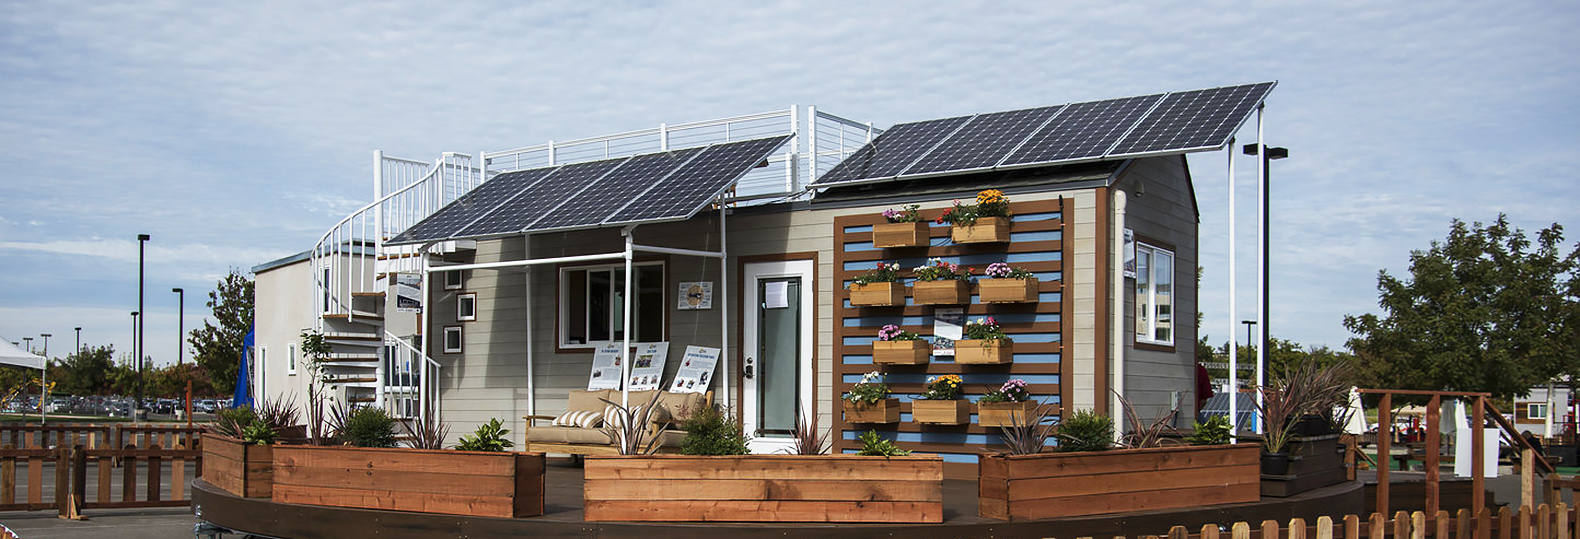 House design competition - Revolving Solar Powered Home For Veterans Wins California S First Tiny House Competition